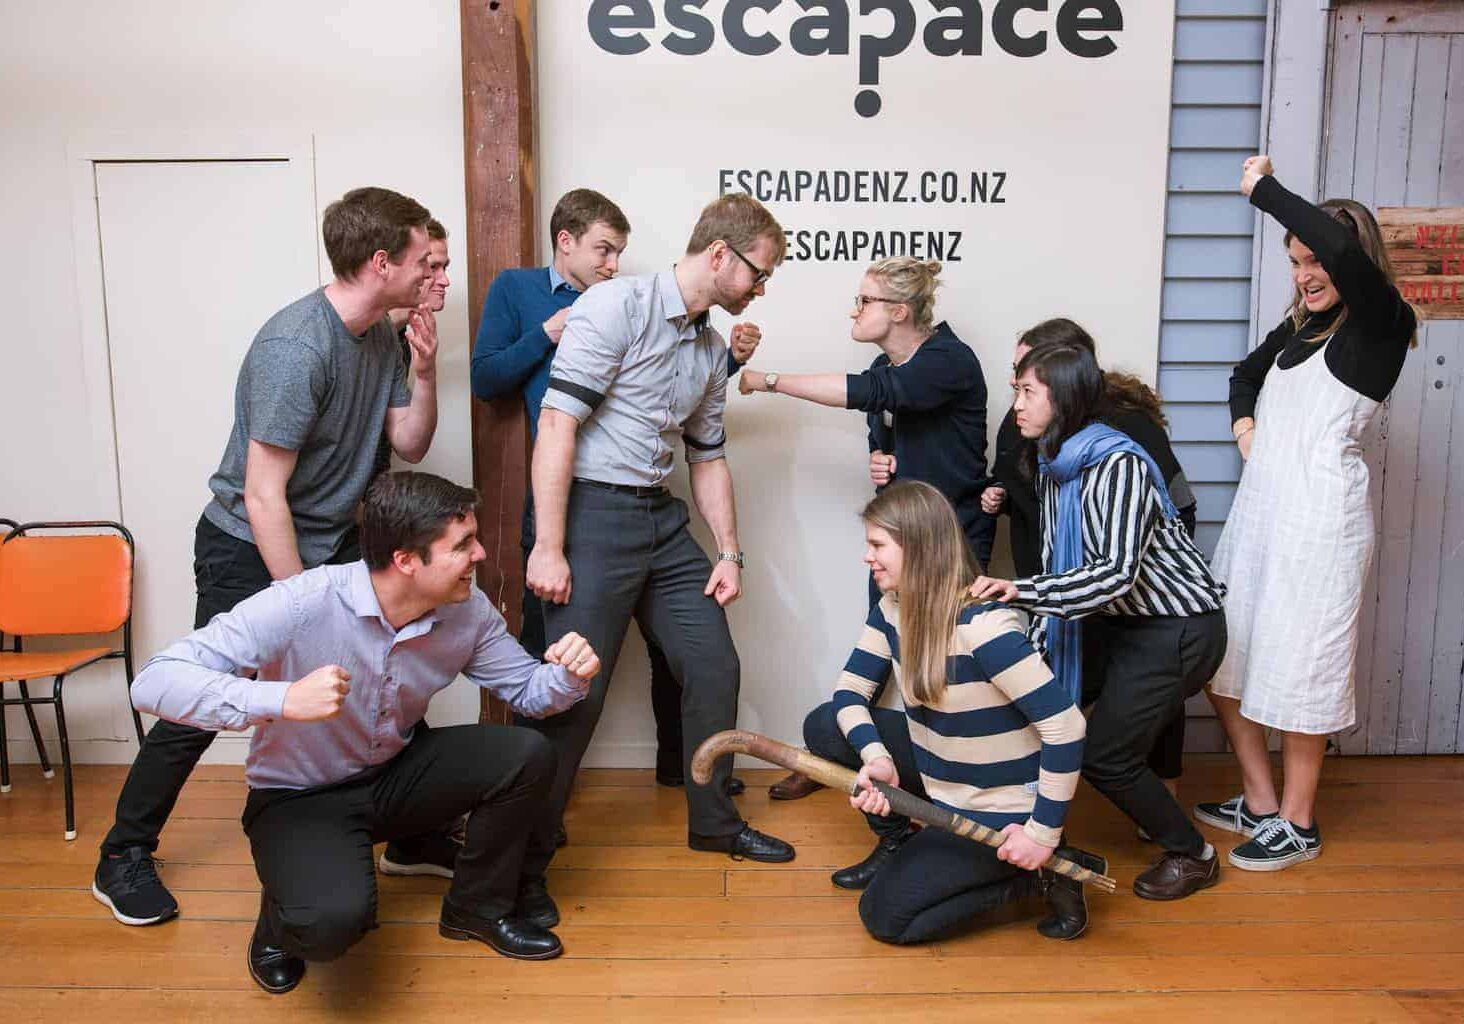 Escape Room Auckland - two teams about to do the Head-to-Head challenge